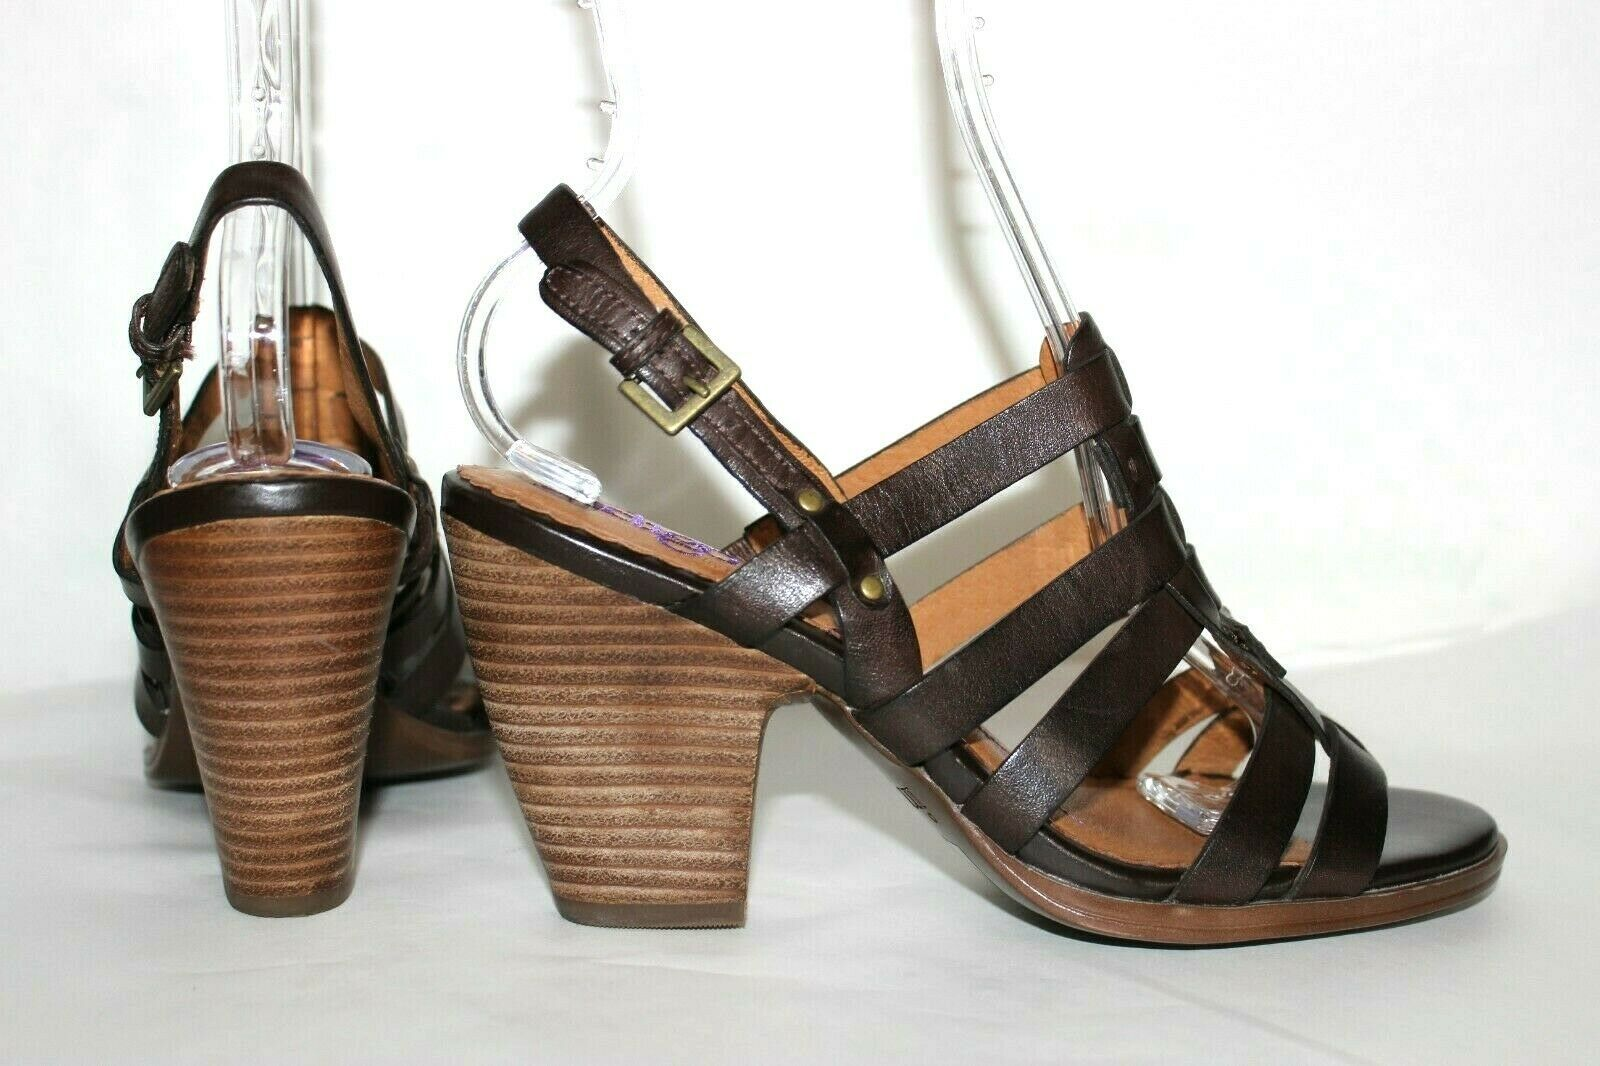 ✿ INDIGO by Clarks Woven Strappy Slingback Heeled Sandals 8 M EXCELLENT! L@@K!26 image 4